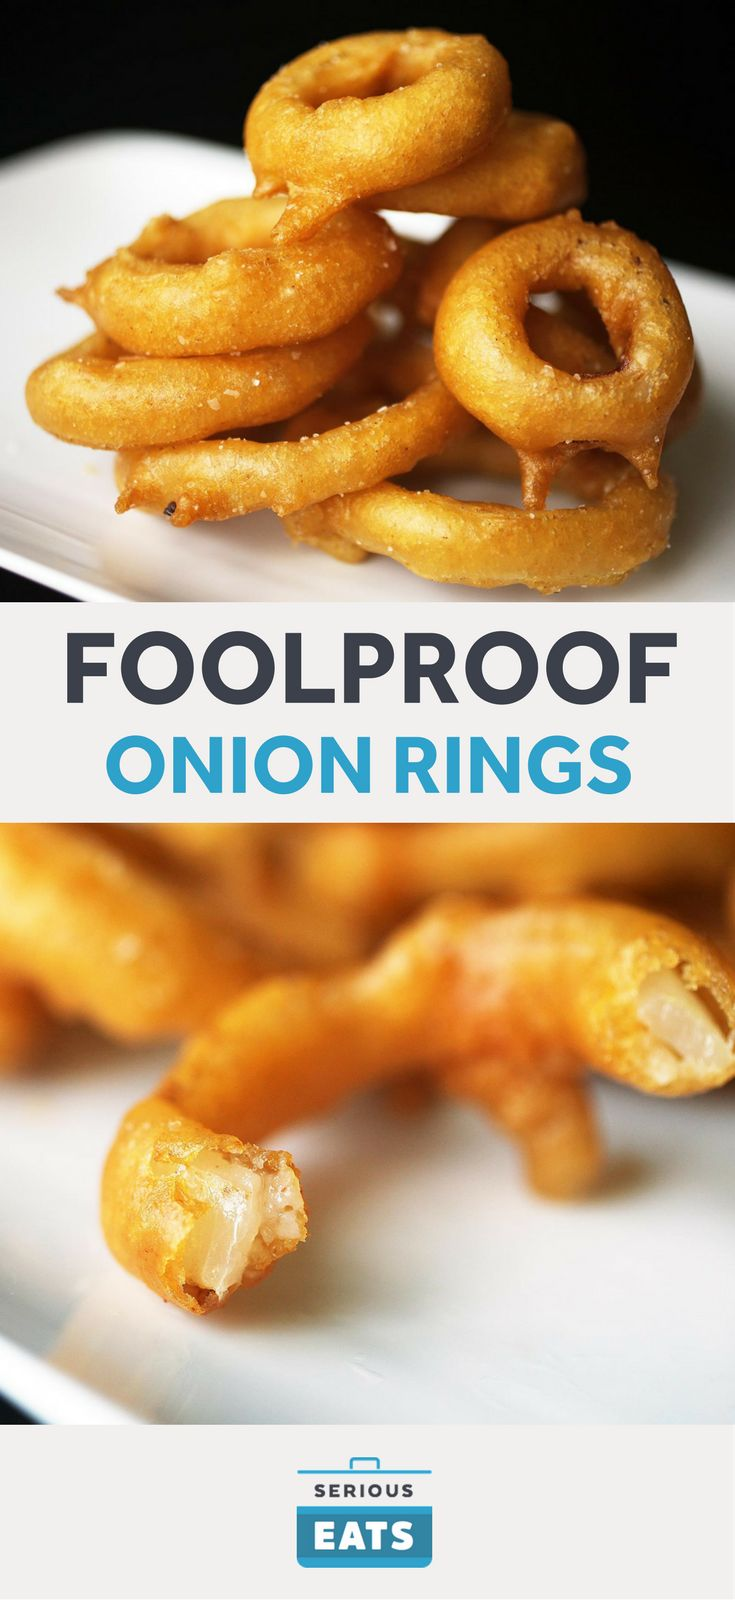 The crispest, lightest onion rings you'll ever taste.